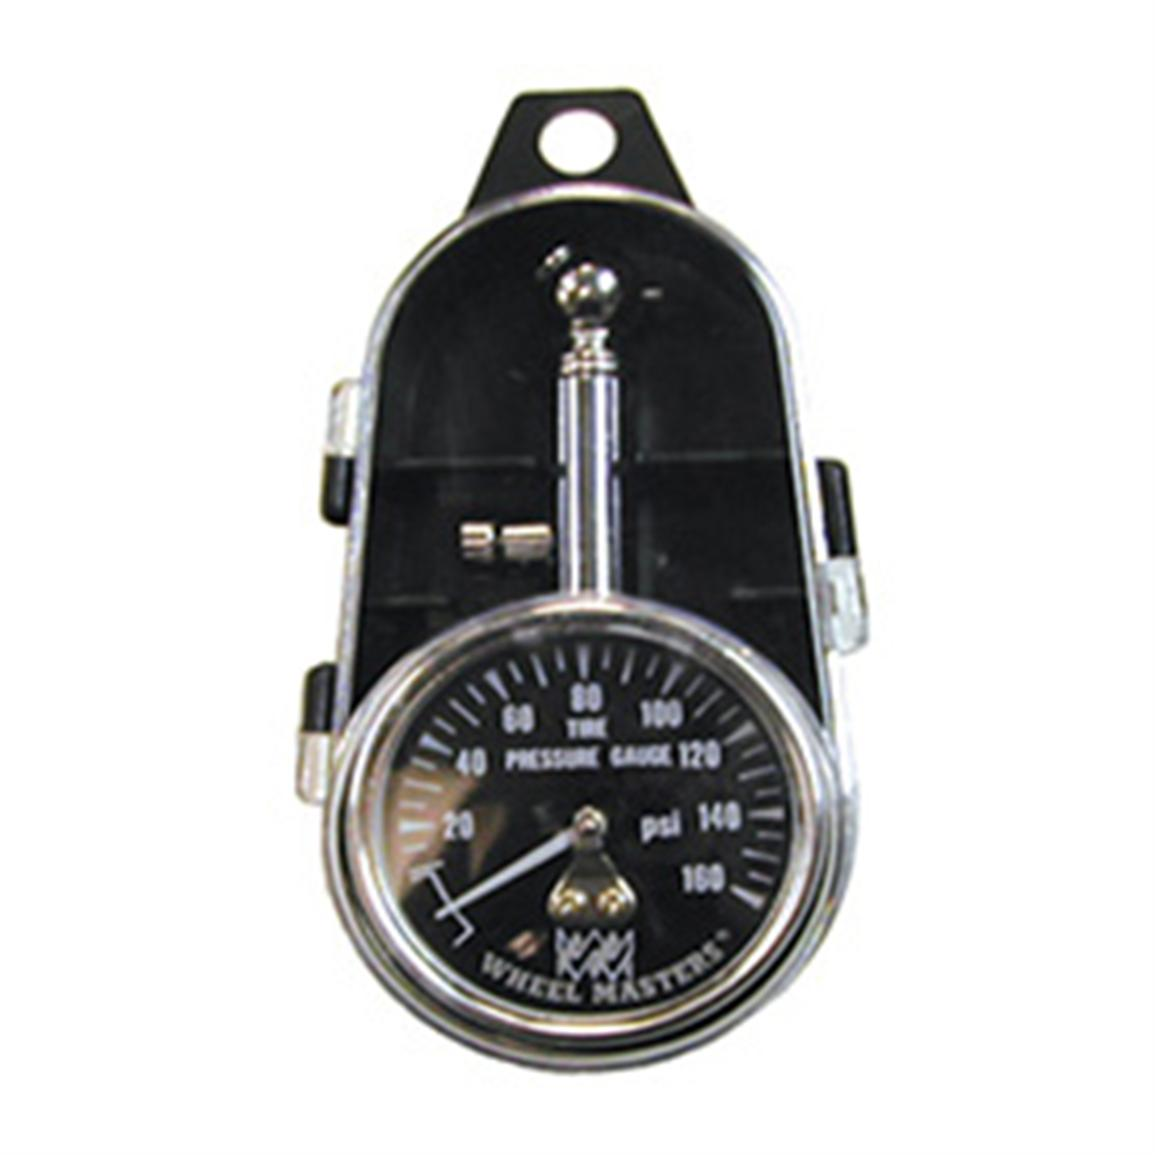 Wheel Masters Tire Pressure Gauge